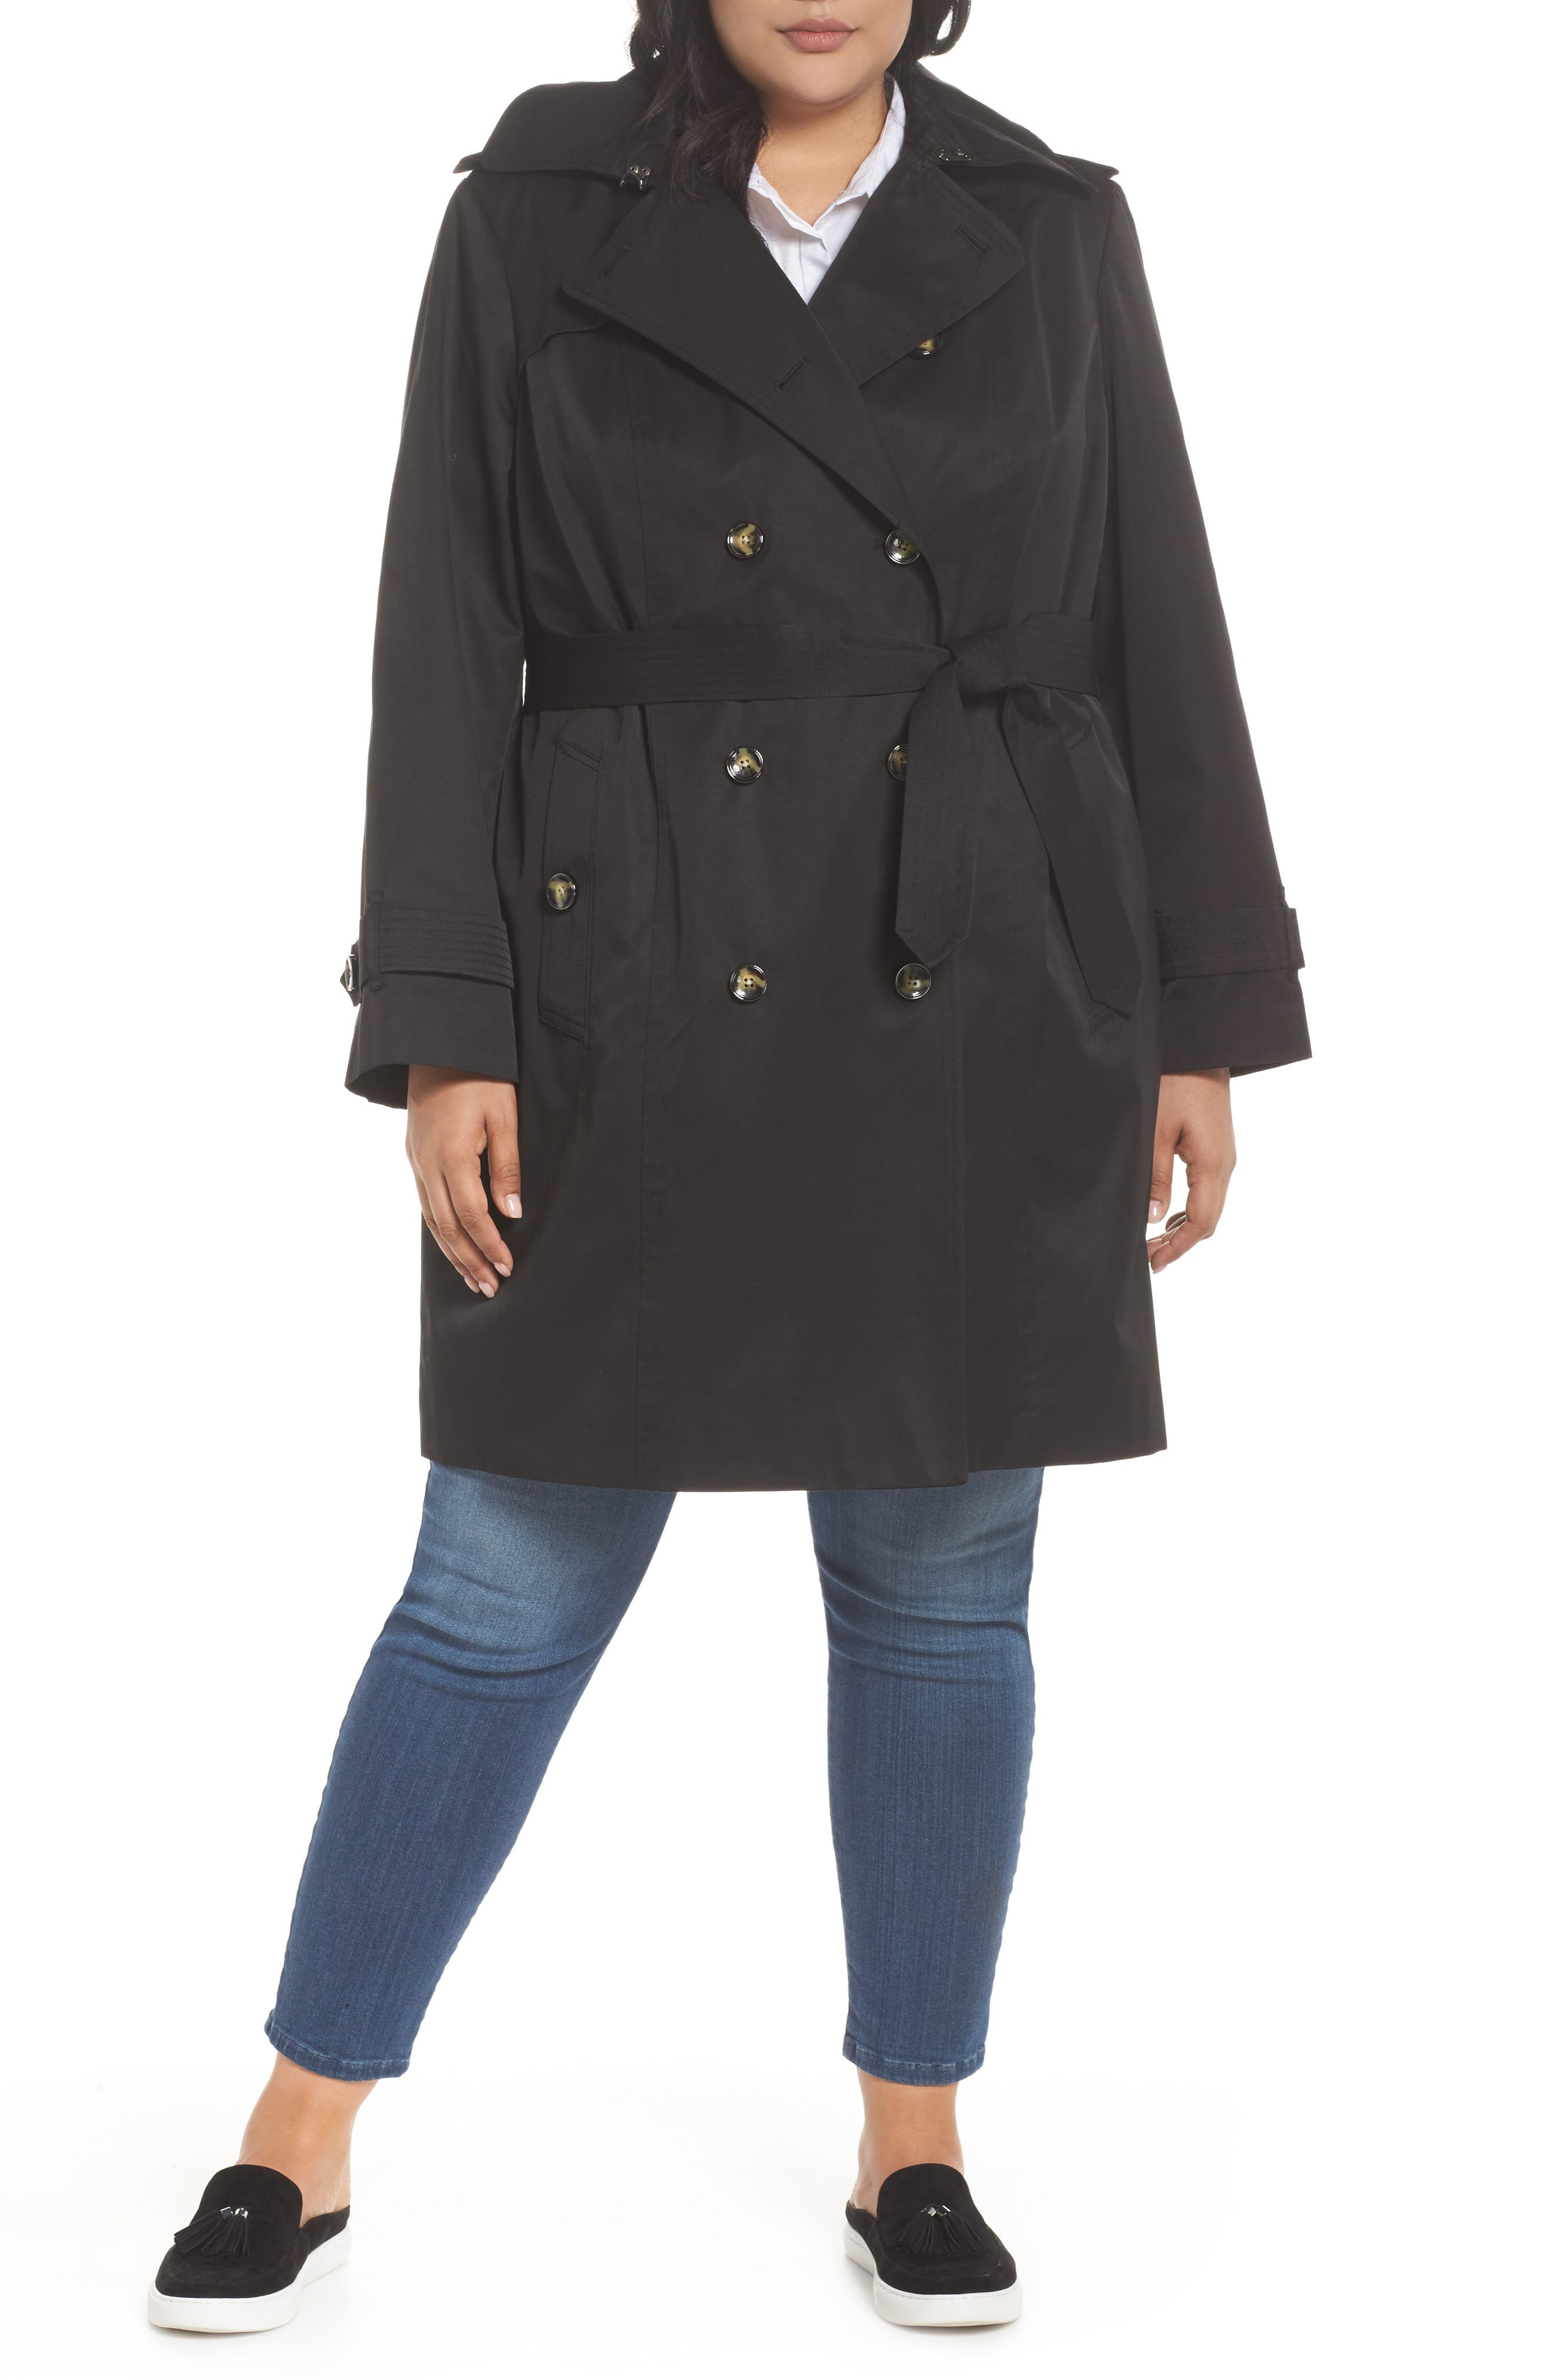 Alternate Image 1 Selected - London Fog Hooded Double Breasted Trench Coat (Plus Size)